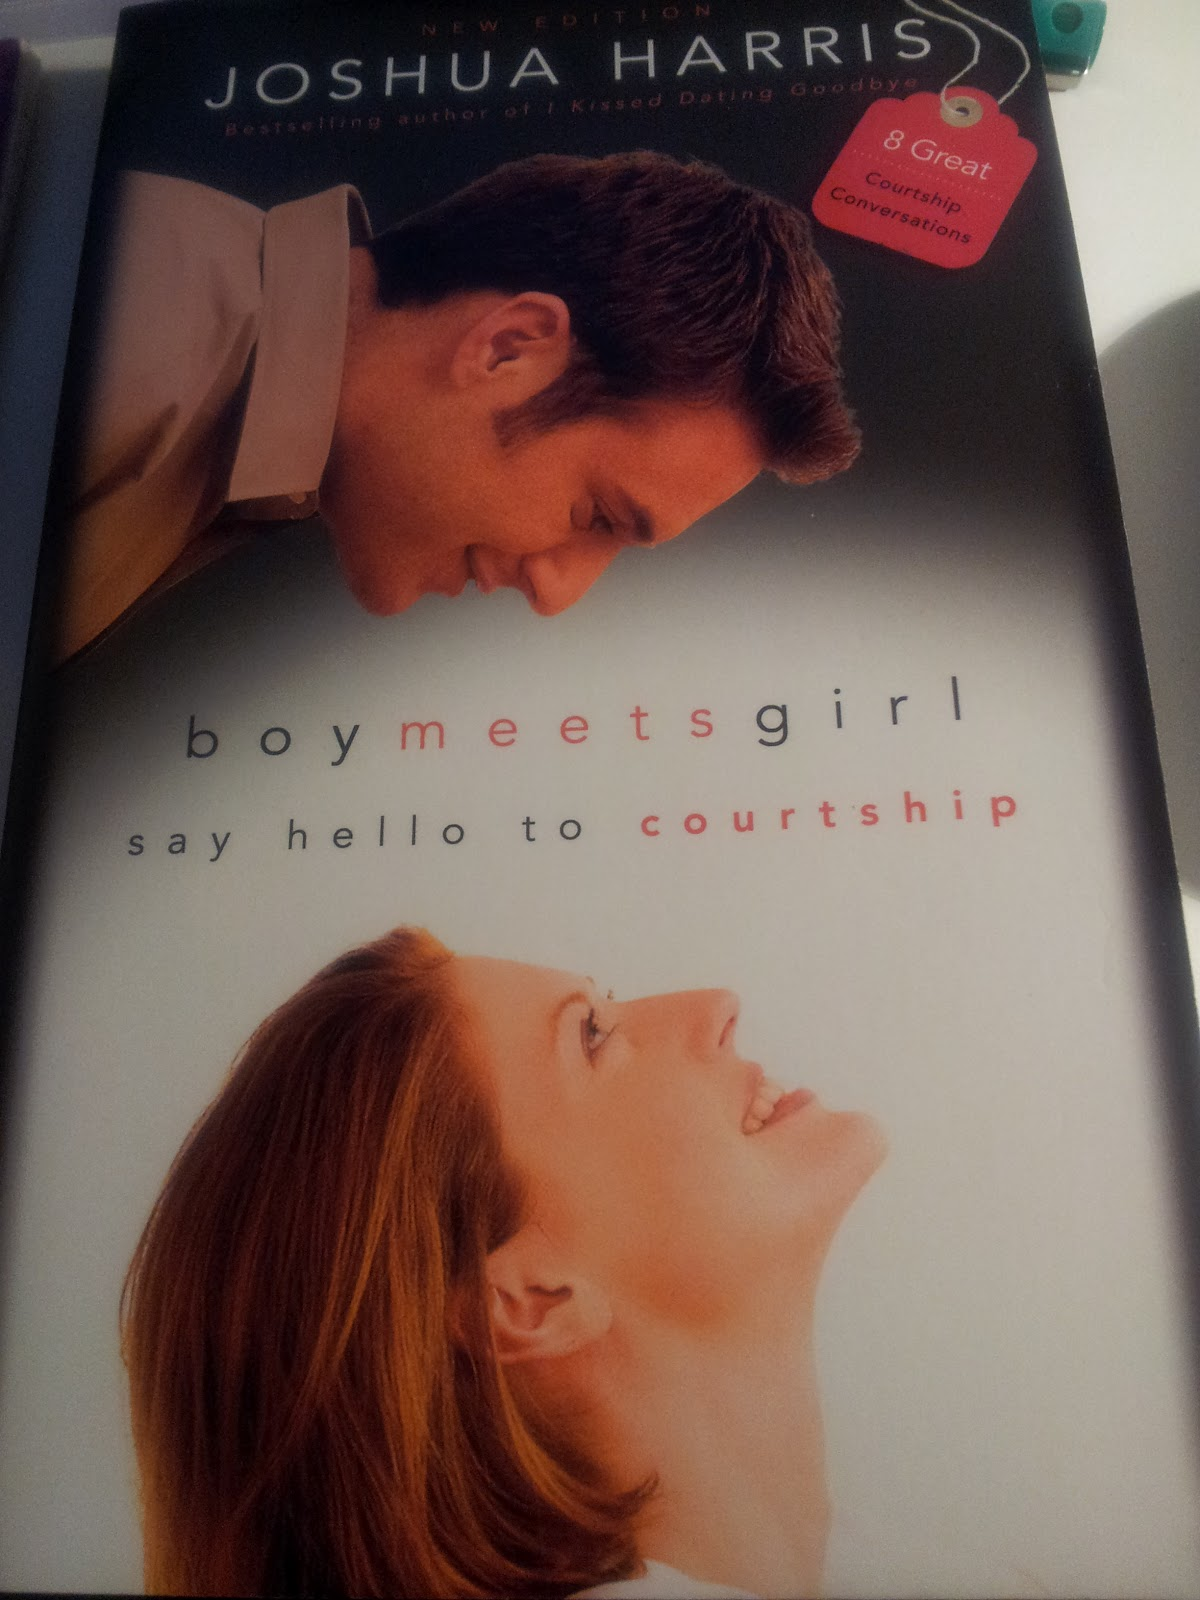 I kissed hookup goodbye by joshua harris epub